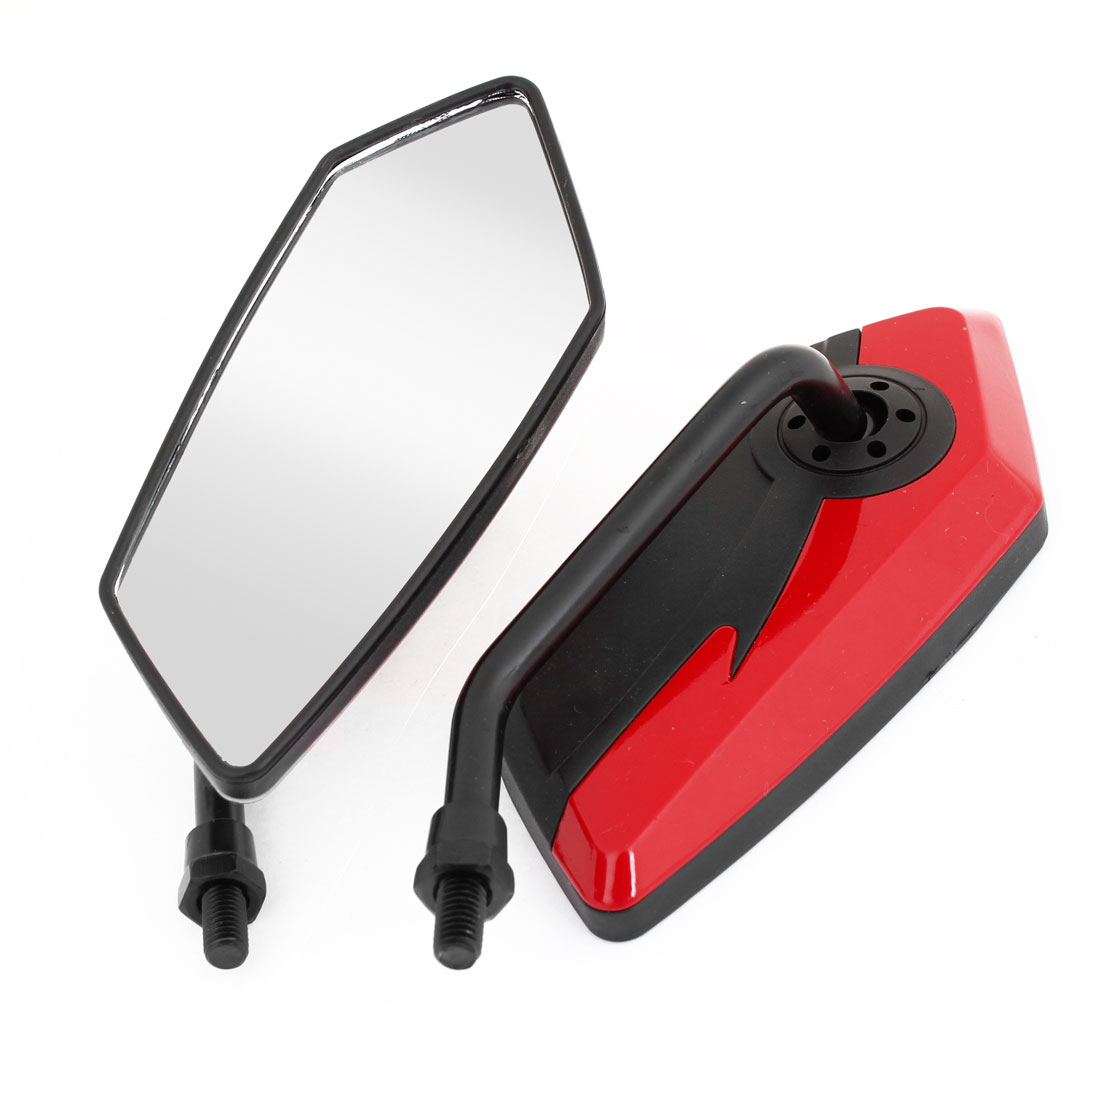 2 x Motorcycle Black Red Plastic Casing Adjustable Rear View Blind Spot Mirrors